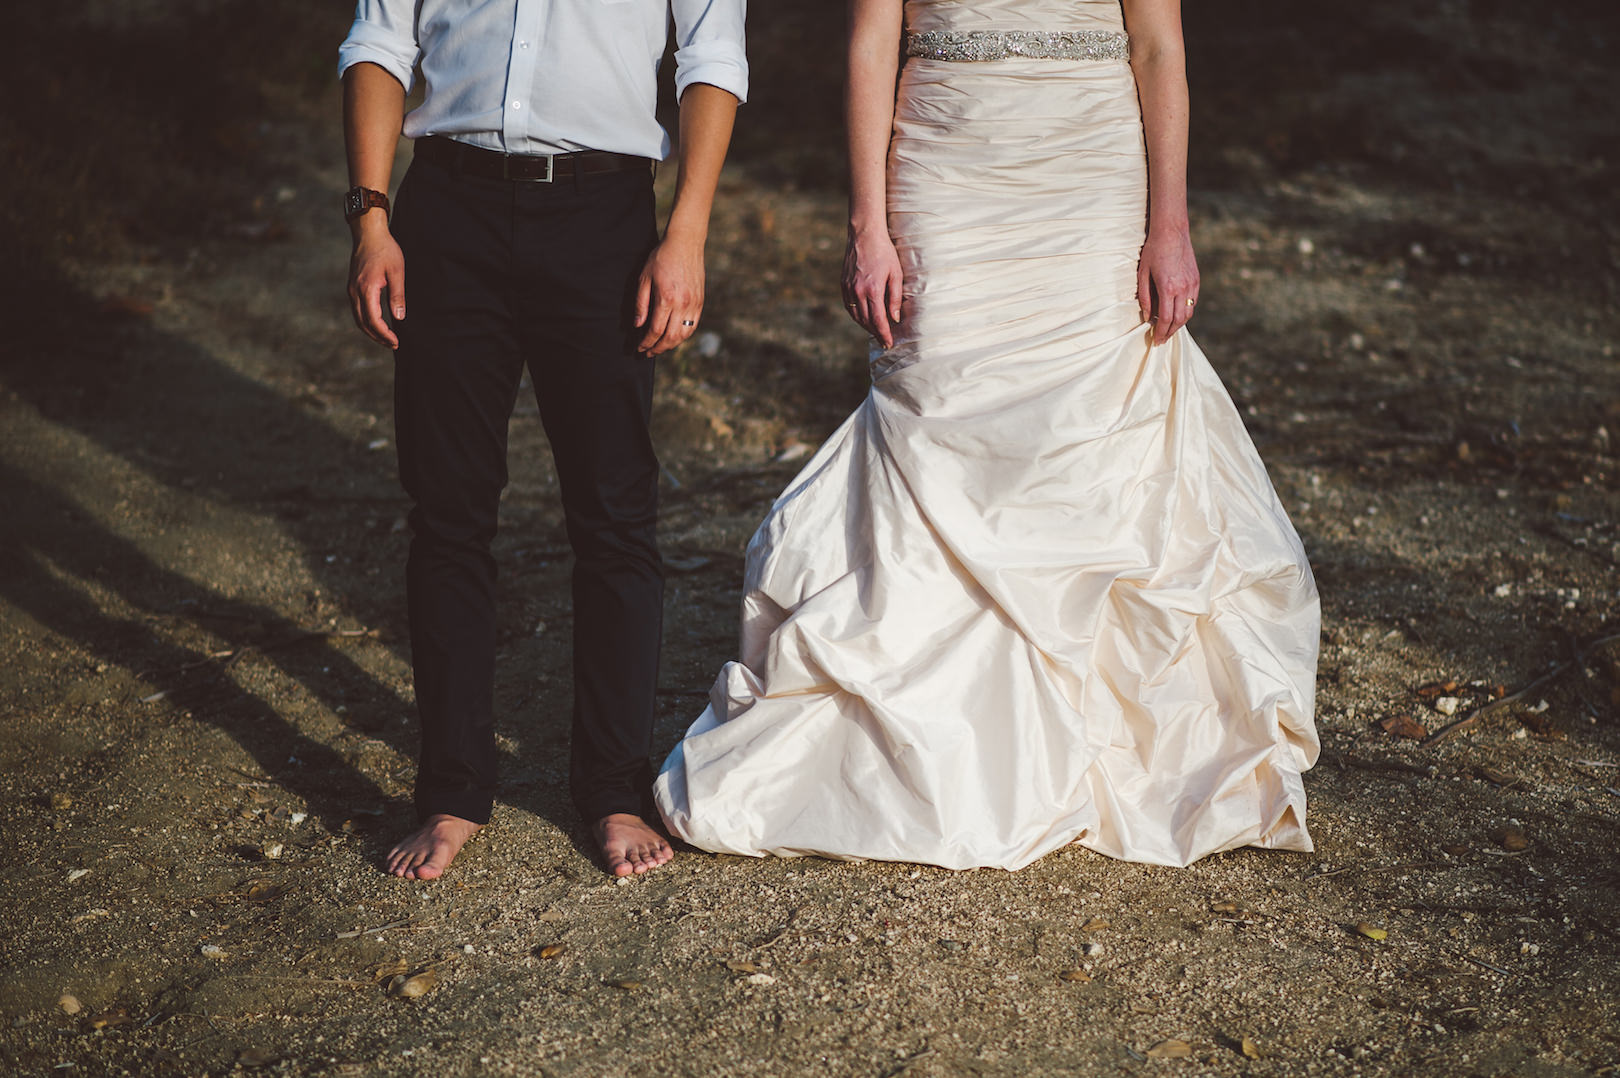 Steve & Mika - Sayulita - © Dallas Kolotylo Photography - 819